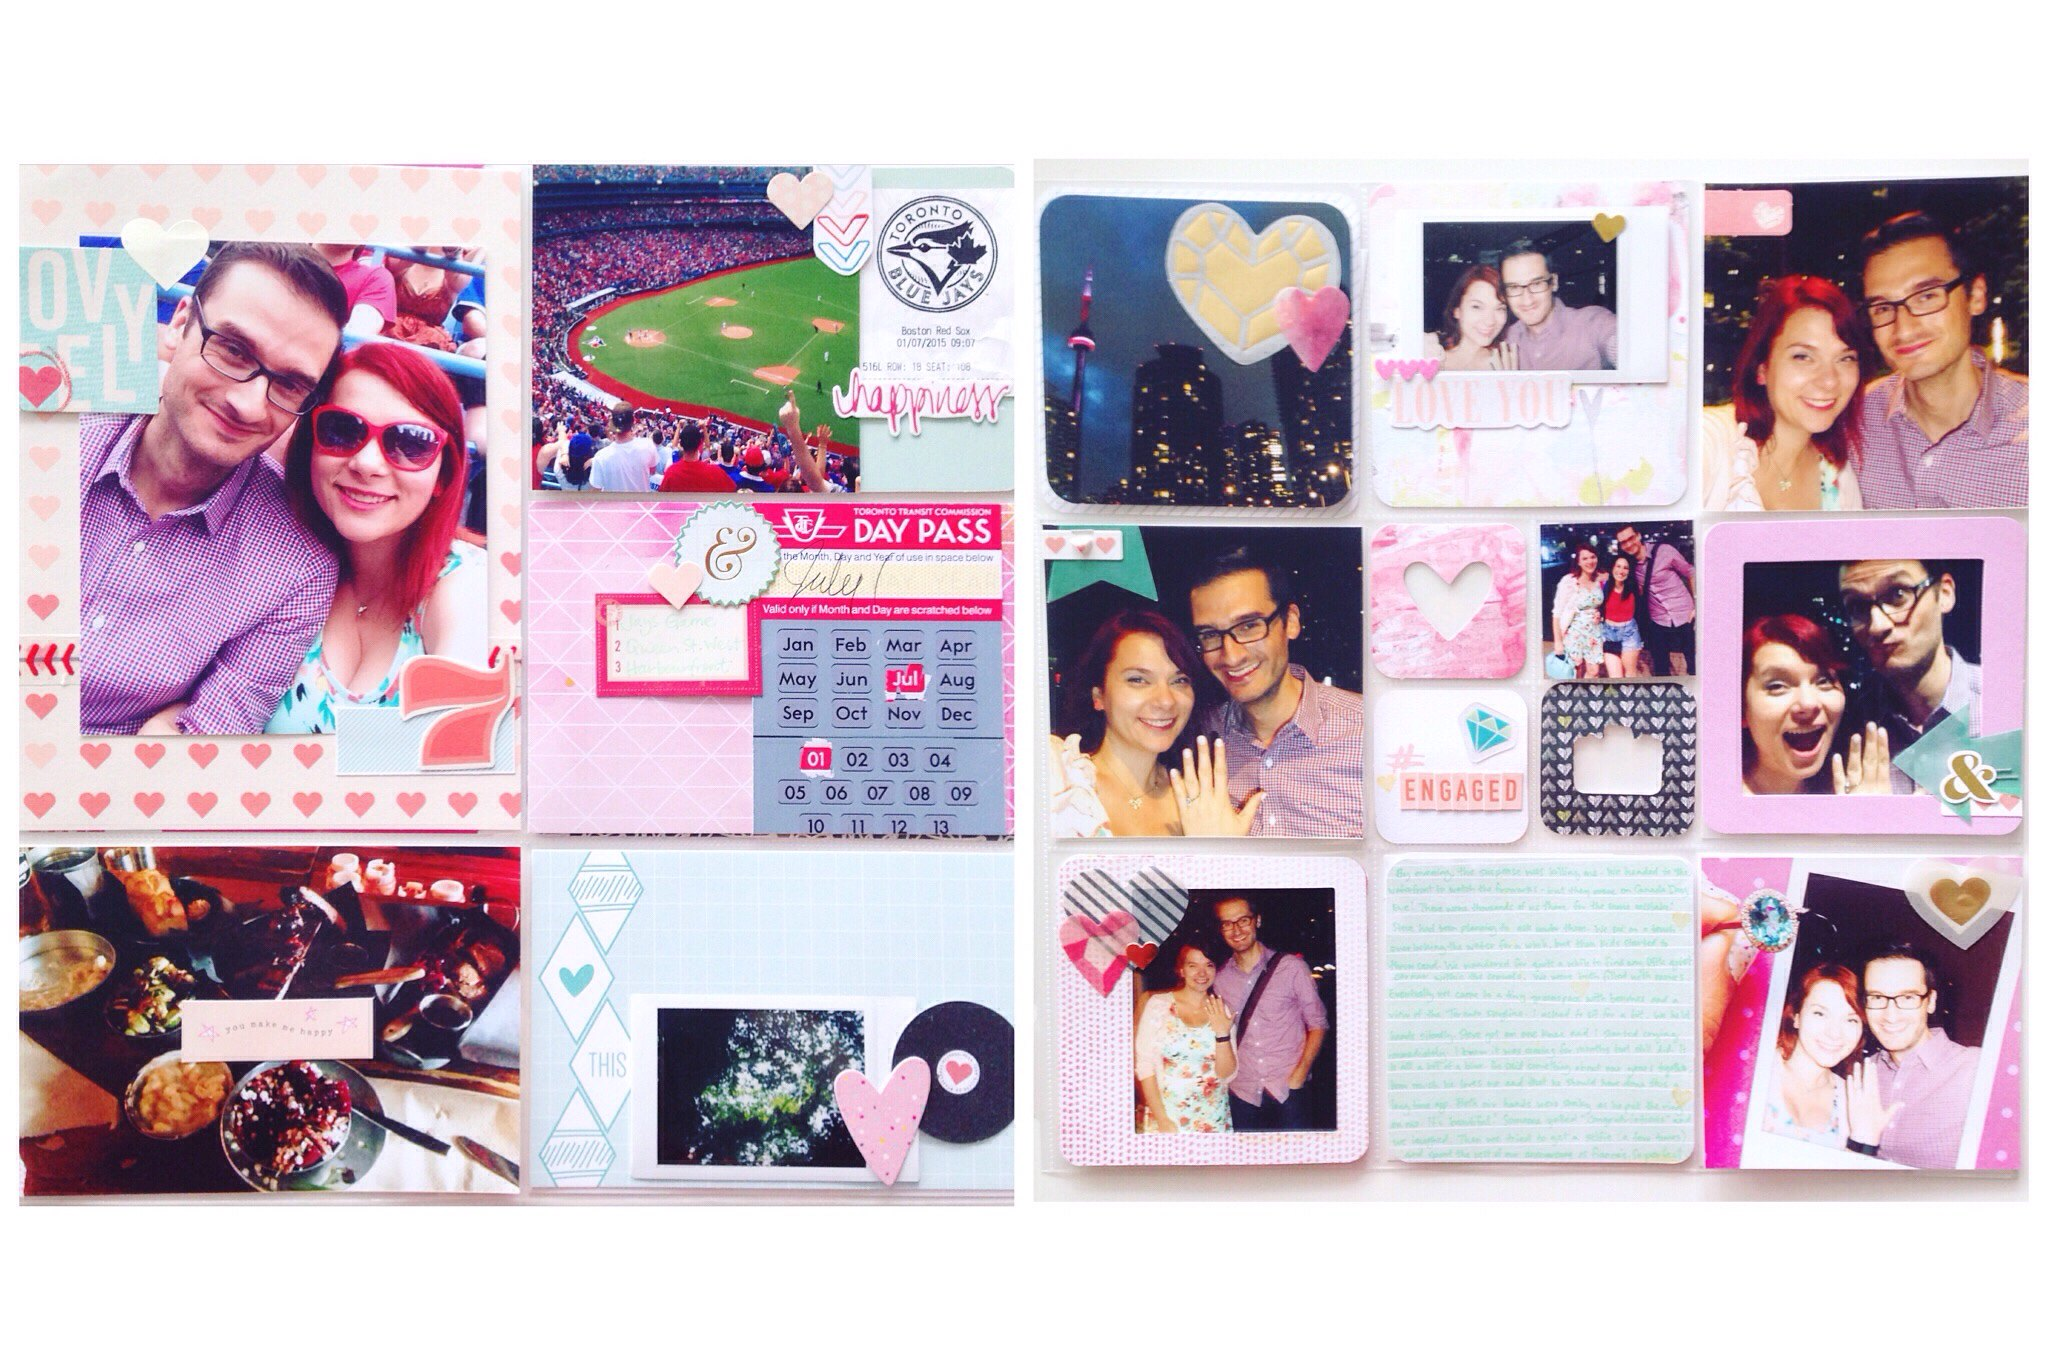 Kill mockingbird scrapbook ideas - Do You Scrapbook Have Any Questions About Scrapbooking Or Project Life I Ll Try To Post More Layouts Again Soon